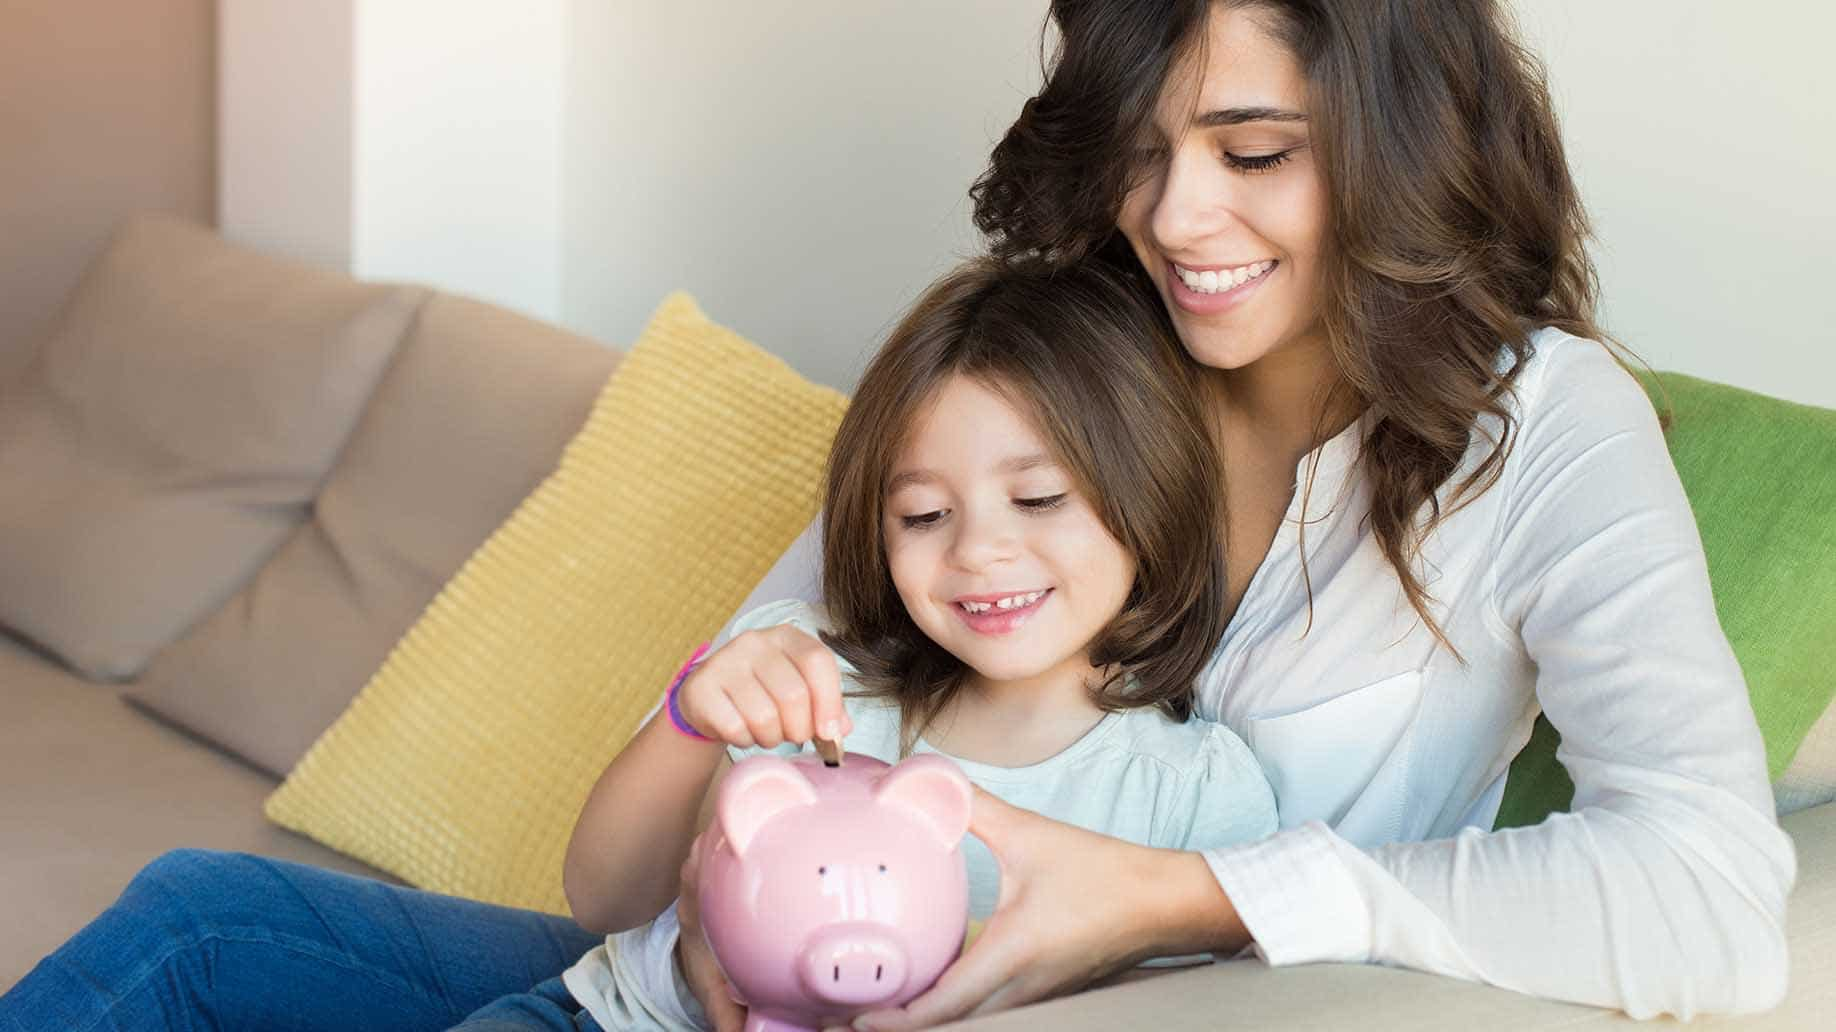 mother daughter putting coins into a piggy bank